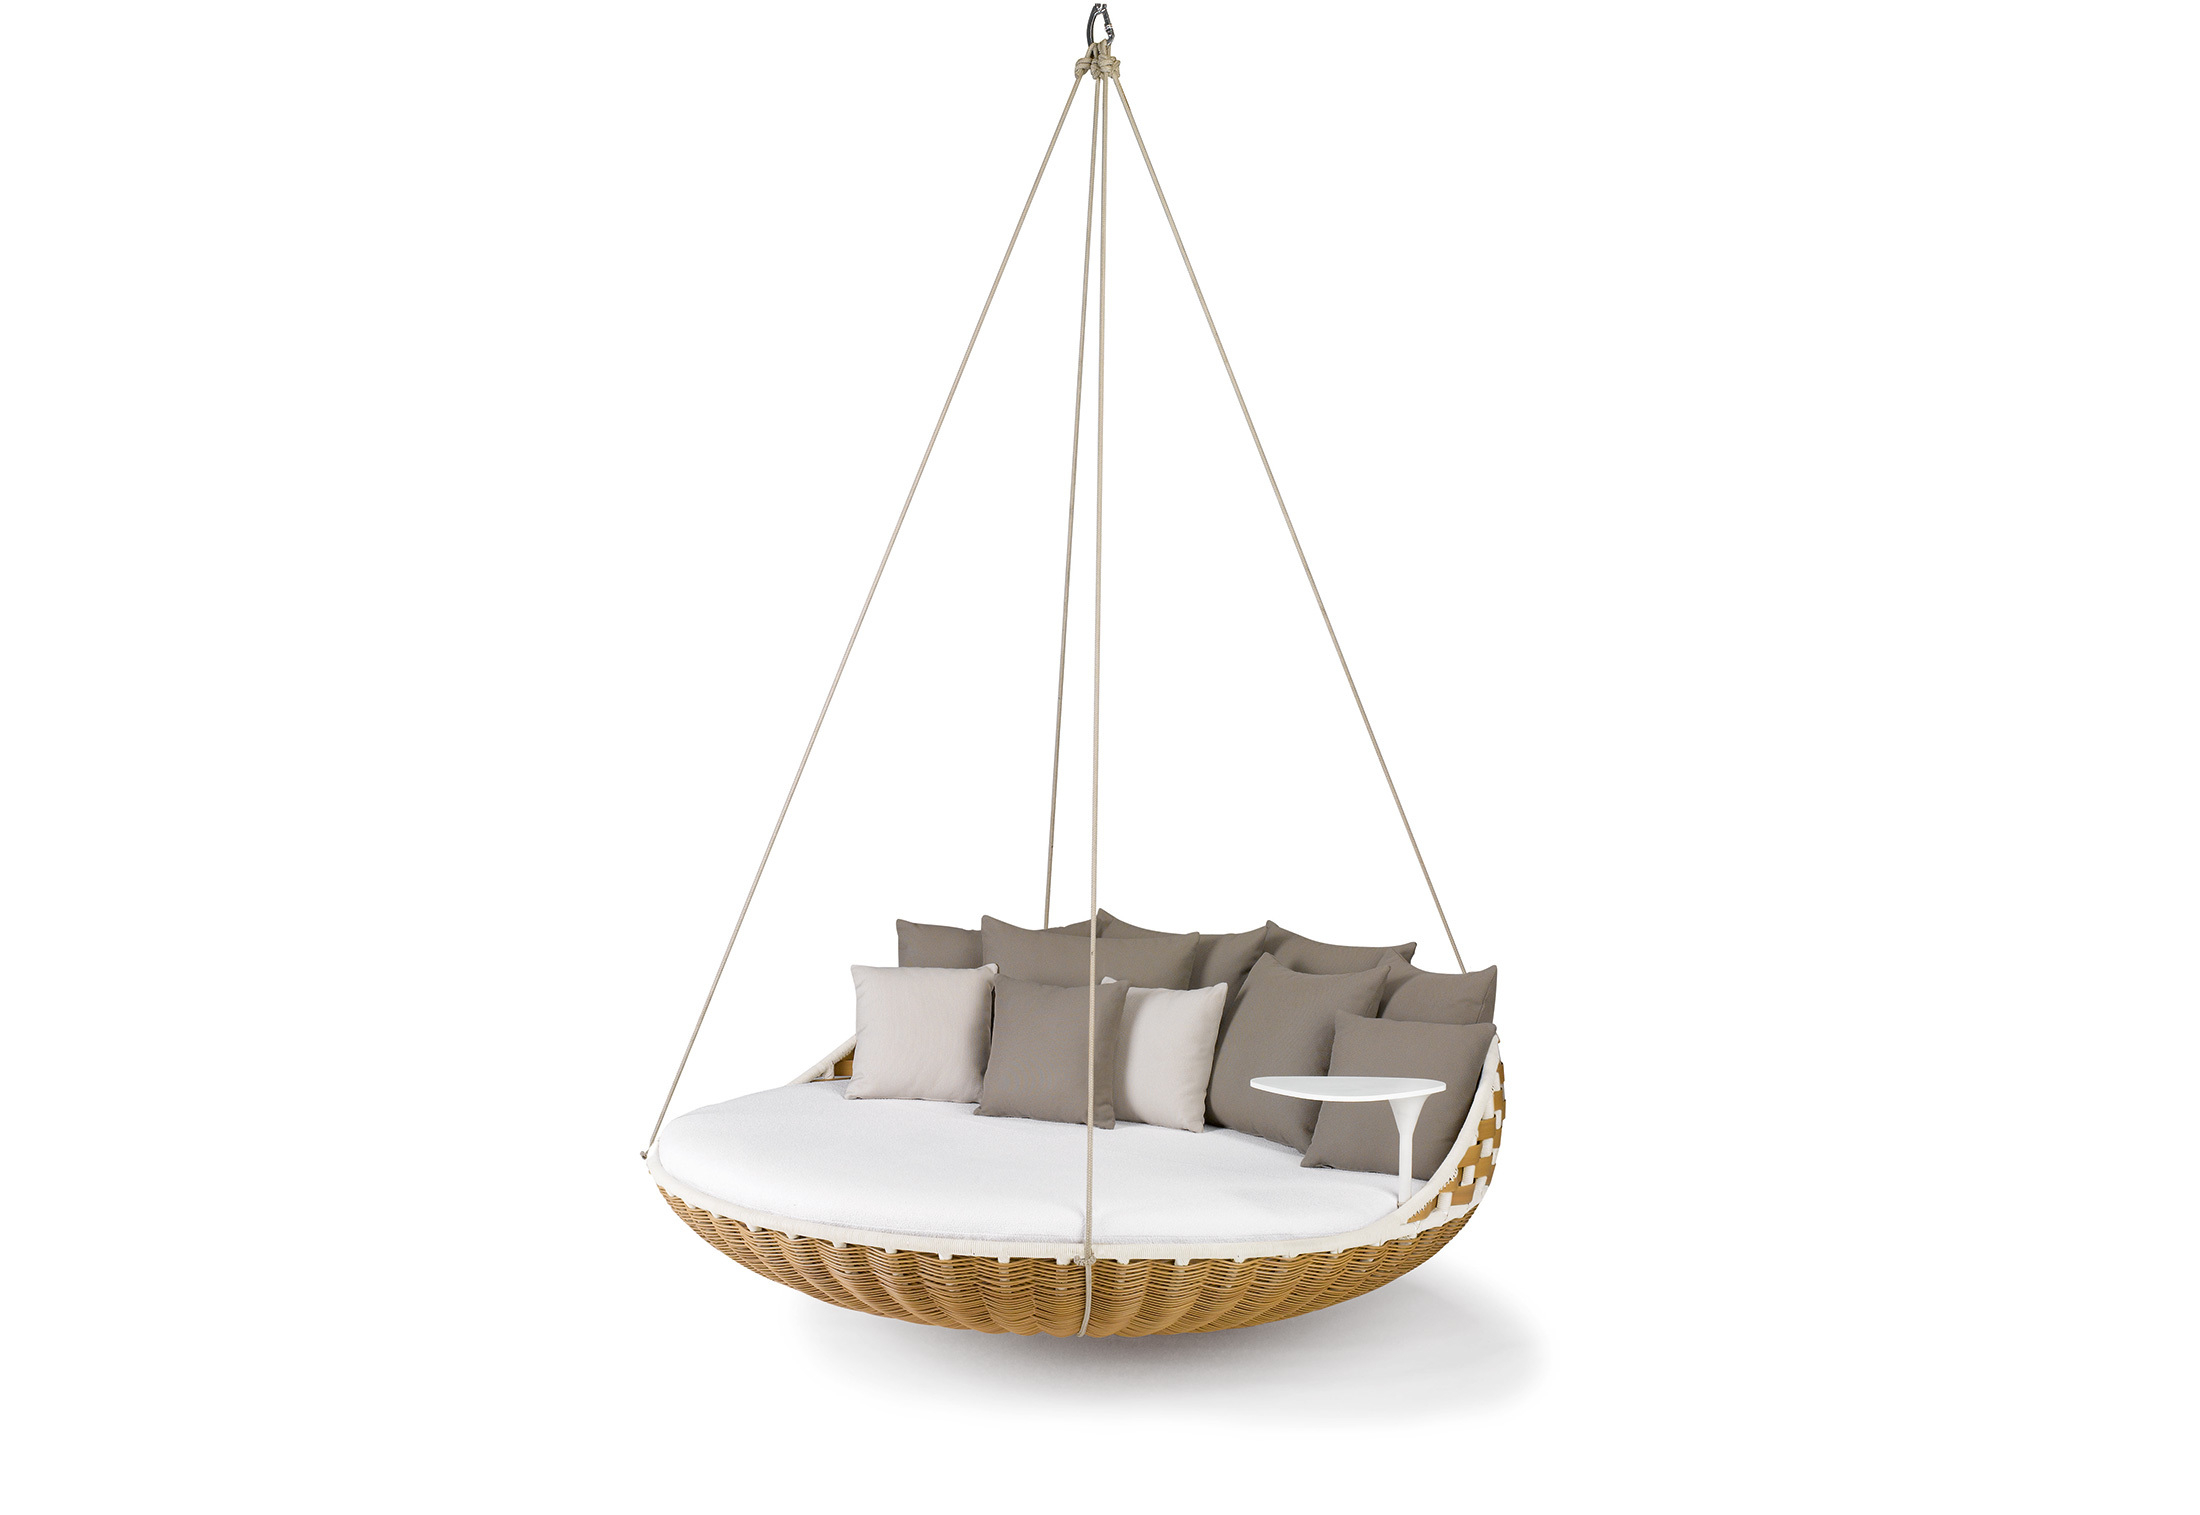 Stylepark Intended For Outdoor Wicker Plastic Half Moon Leaf Shape Porch Swings (View 18 of 30)